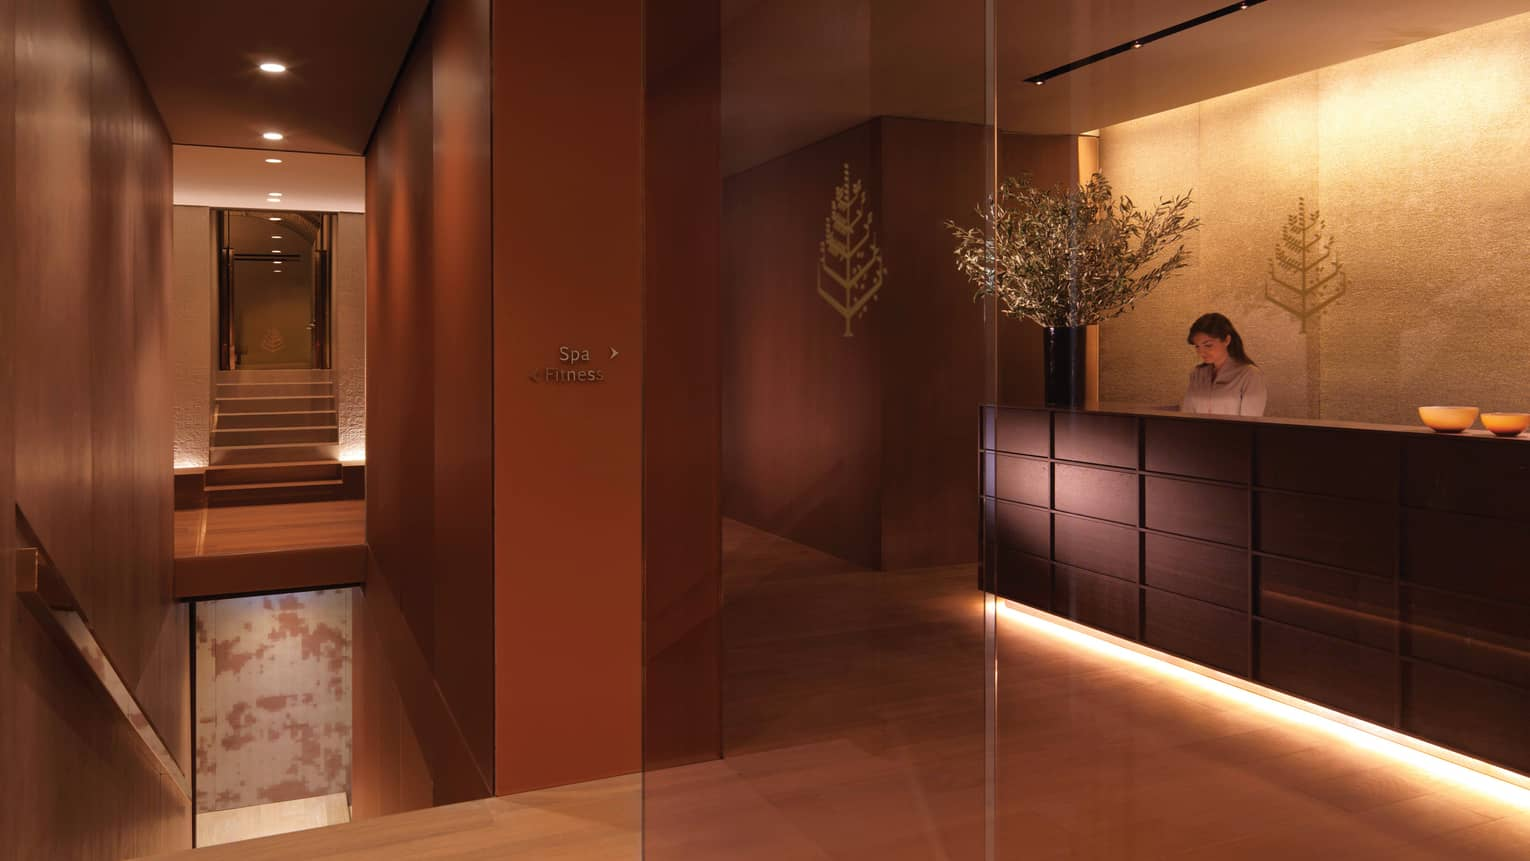 Dimly-lit spa reception area with dark wood panel walls, woman at desk